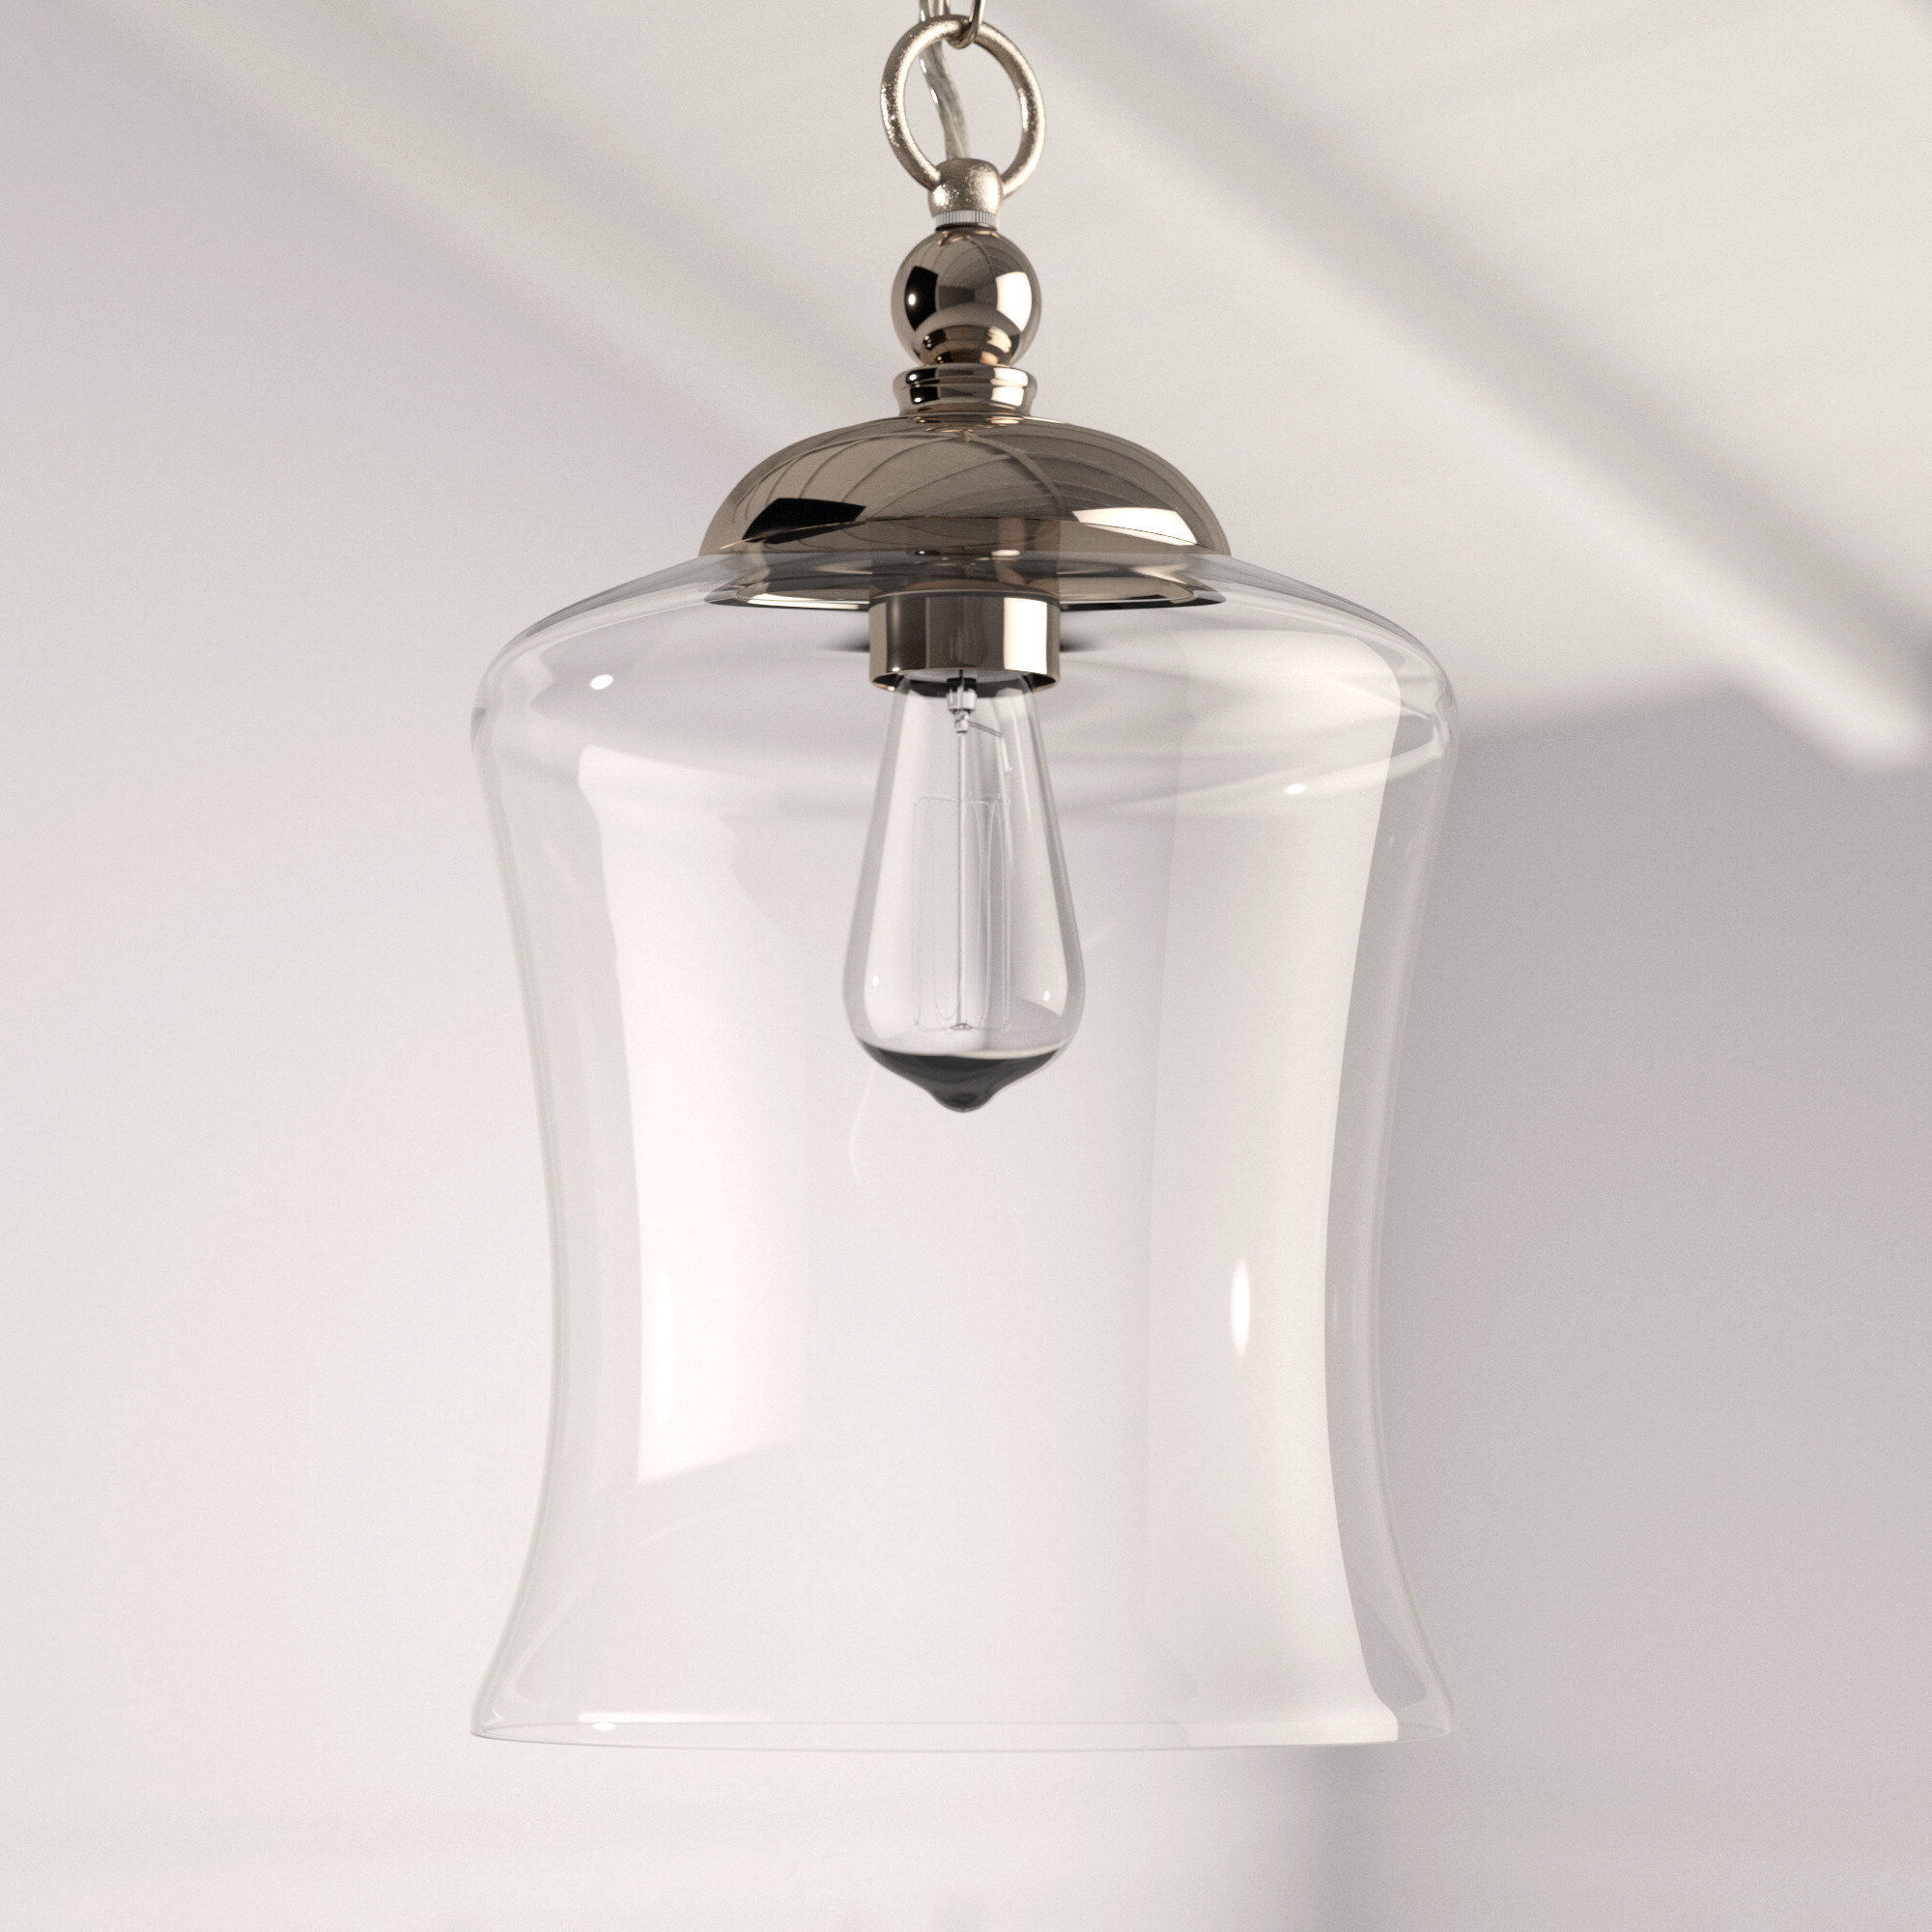 Wentzville 1 Light Single Bell Pendant With Regard To Most Recently Released Moyer 1 Light Single Cylinder Pendants (View 21 of 25)